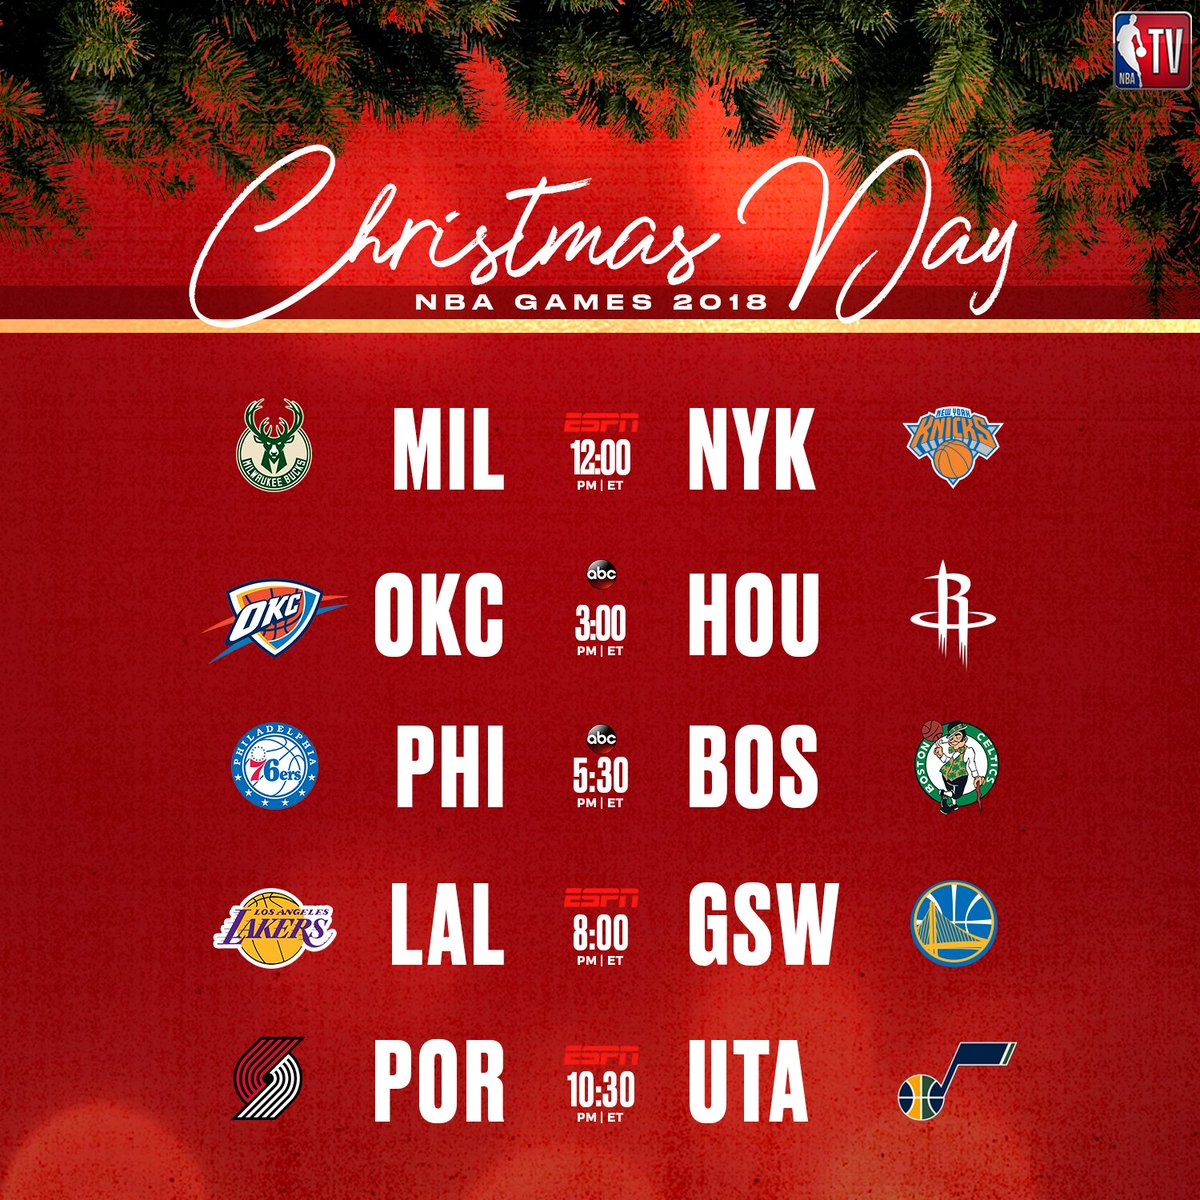 nba tv on twitter a look at the 2018 christmas day games around the nba - Christmas Day 2018